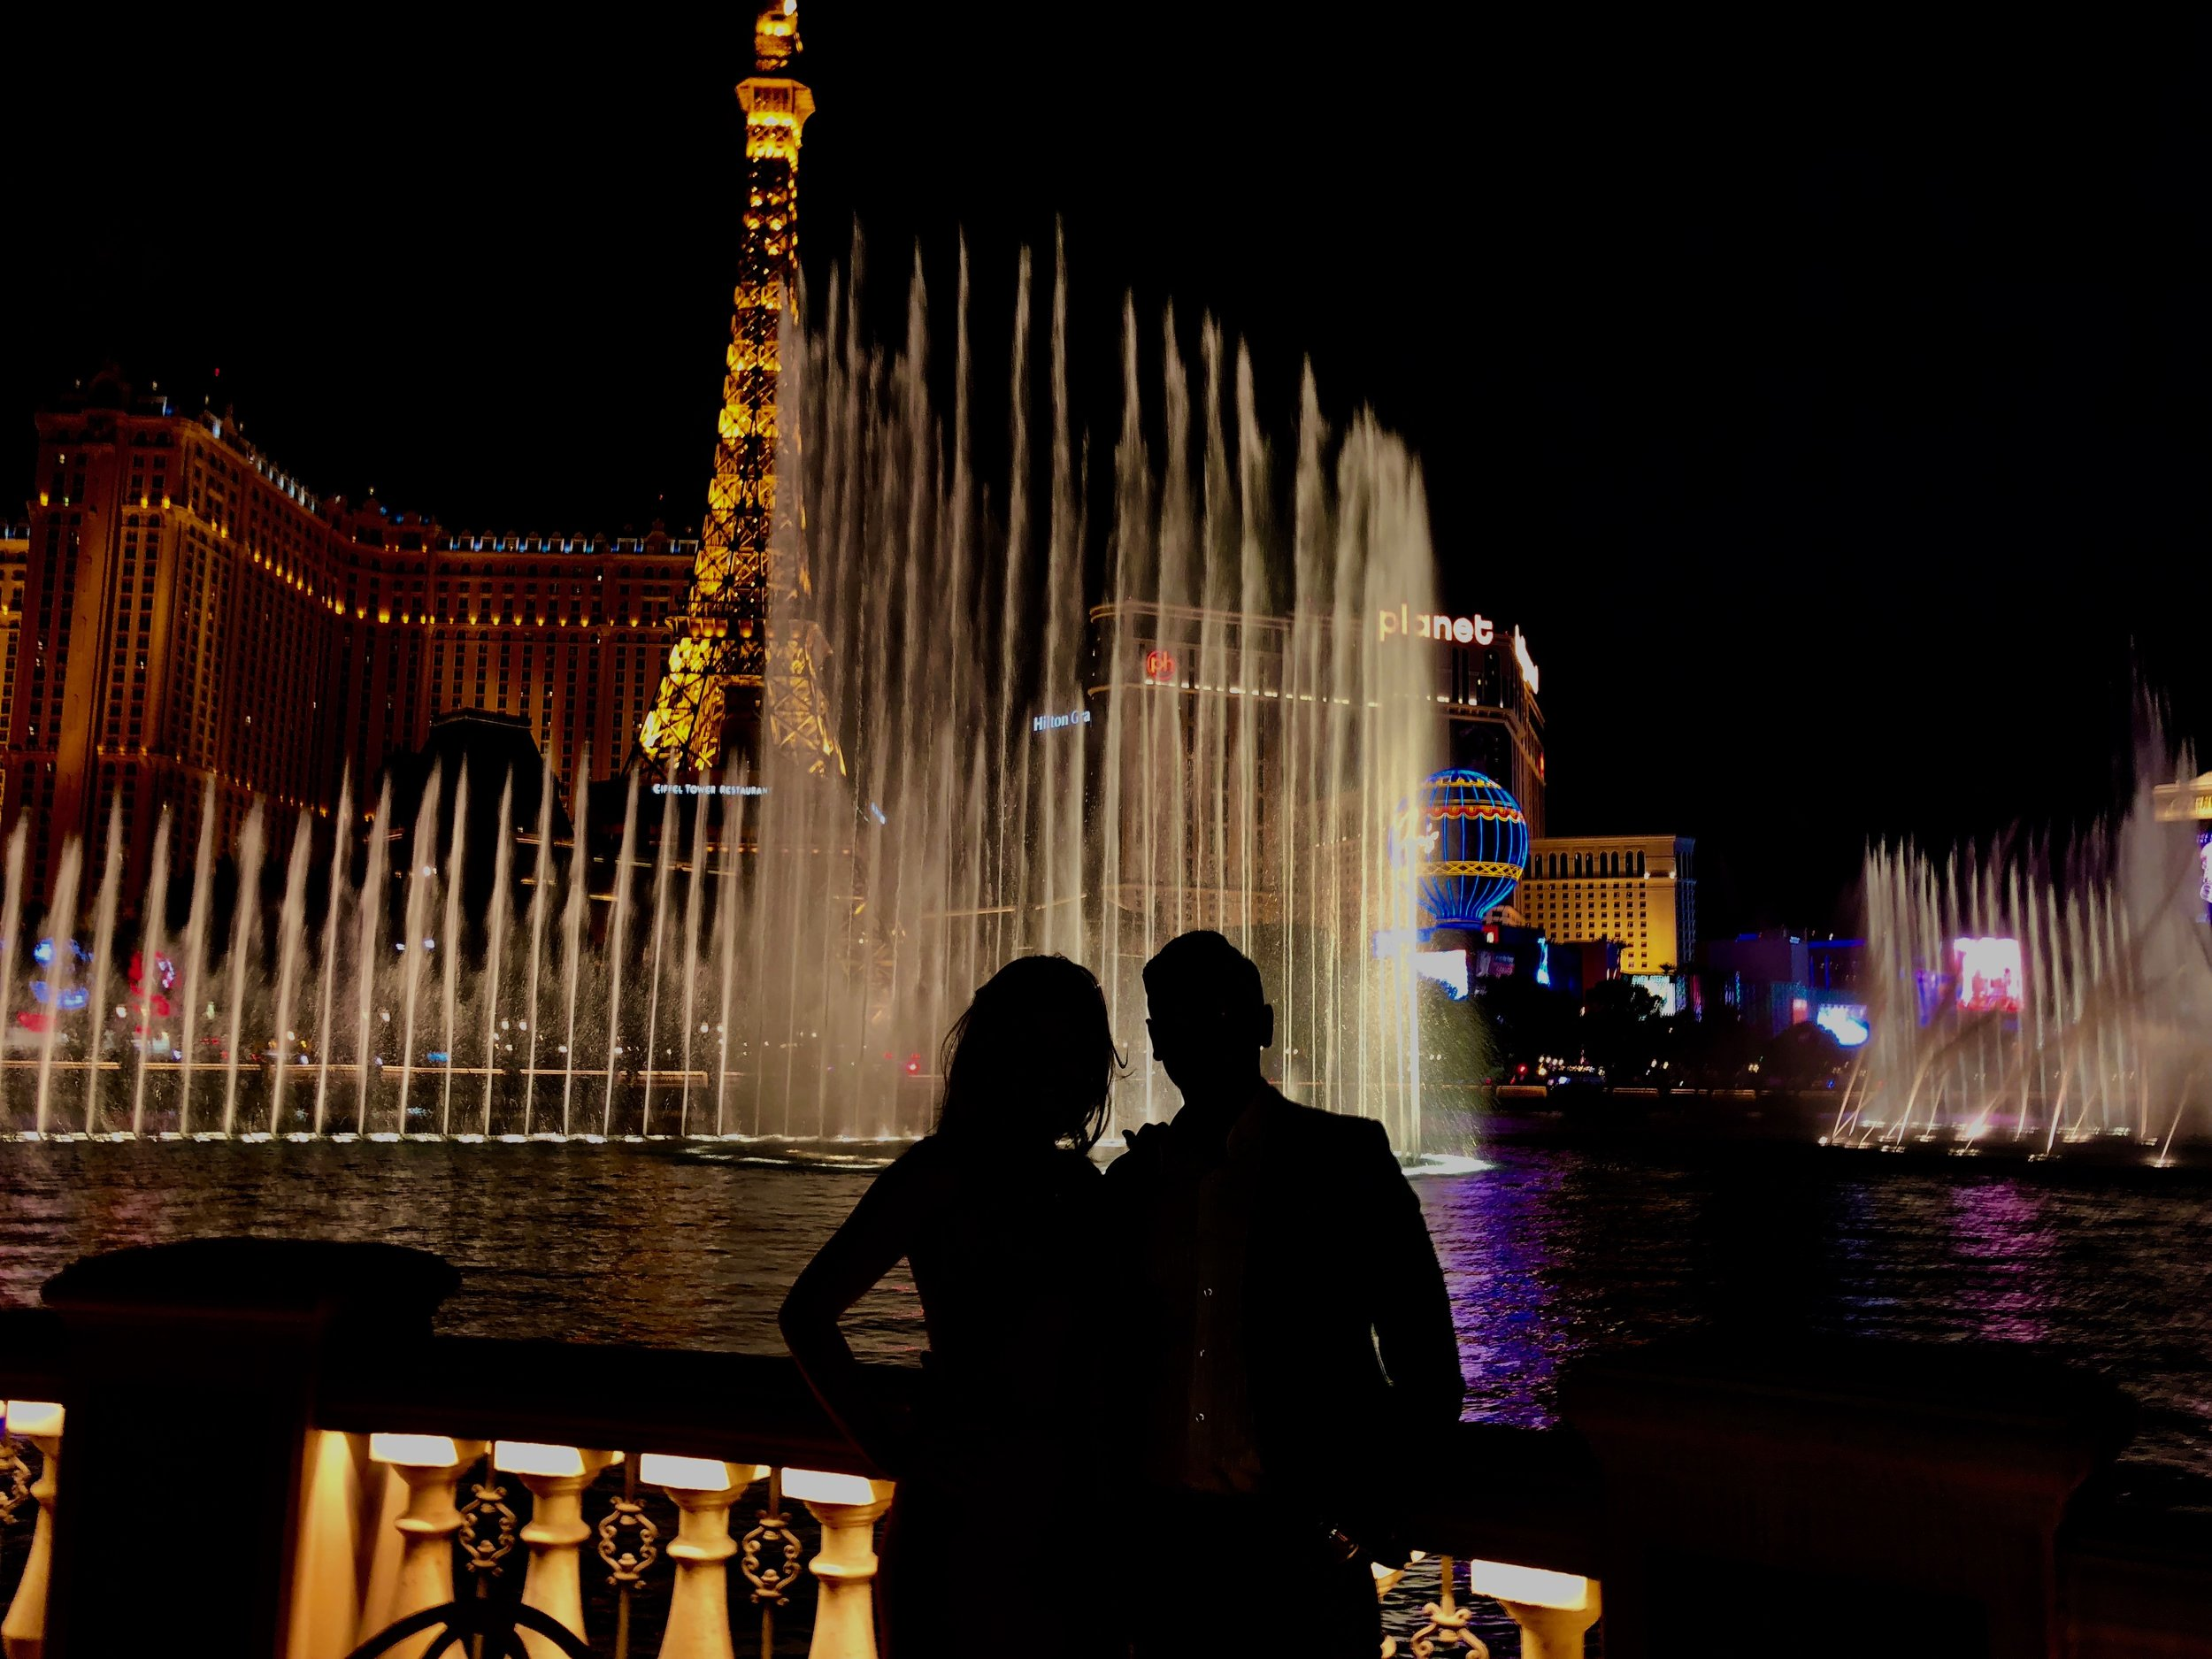 The view of the Bellagio Fountains at Picasso.